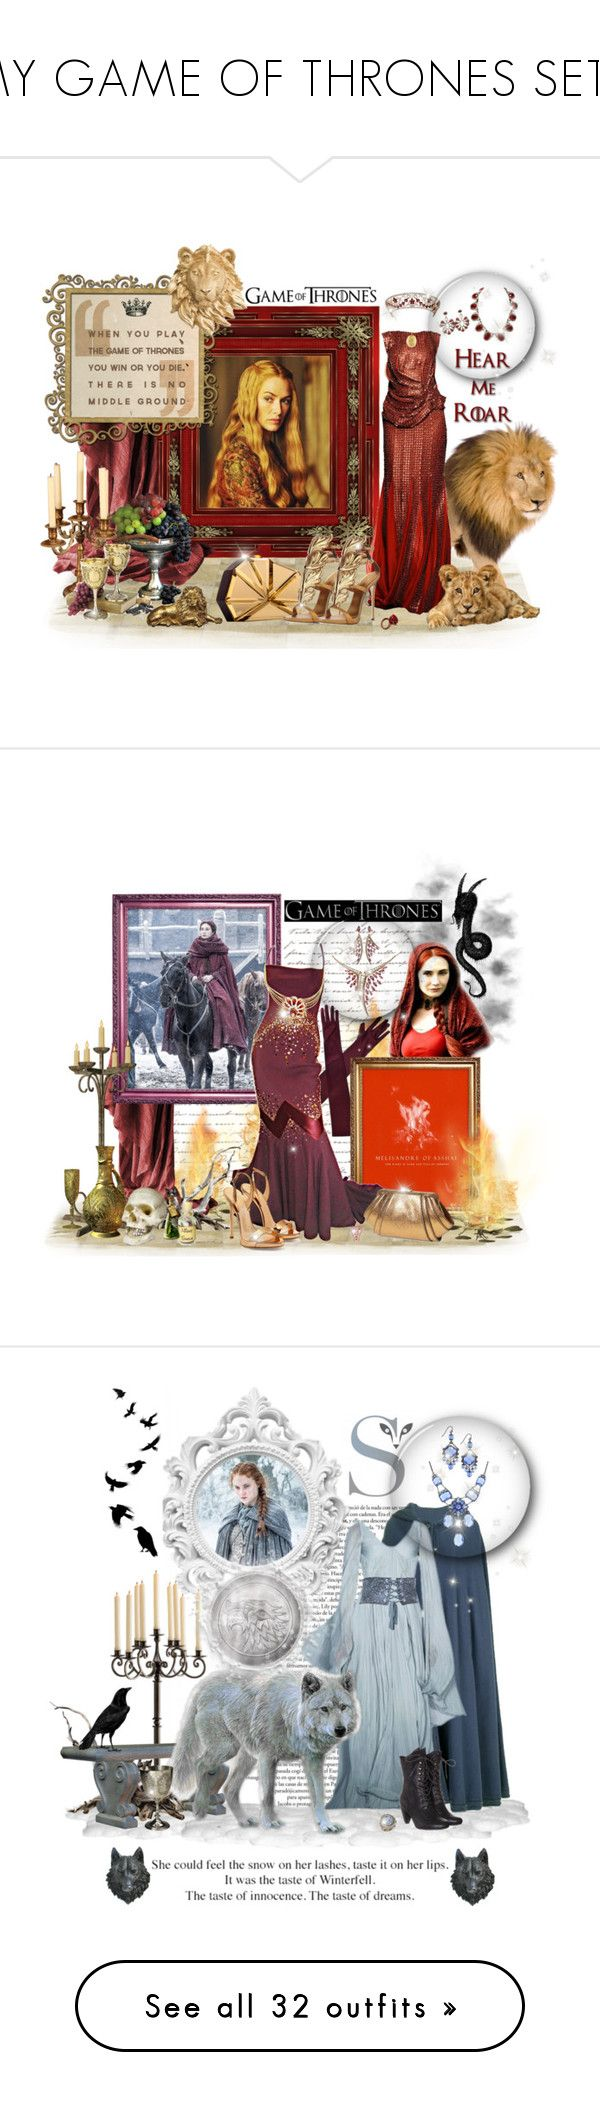 """MY GAME OF THRONES SETS"" by leanne-mcclean ❤ liked on Polyvore featuring BY SOPHIE, KING, Rauwolf, Giuseppe Zanotti, Kenneth Jay Lane, Once Upon a Time, Alaïa, Shaun Leane, ZAC Zac Posen and WALL"